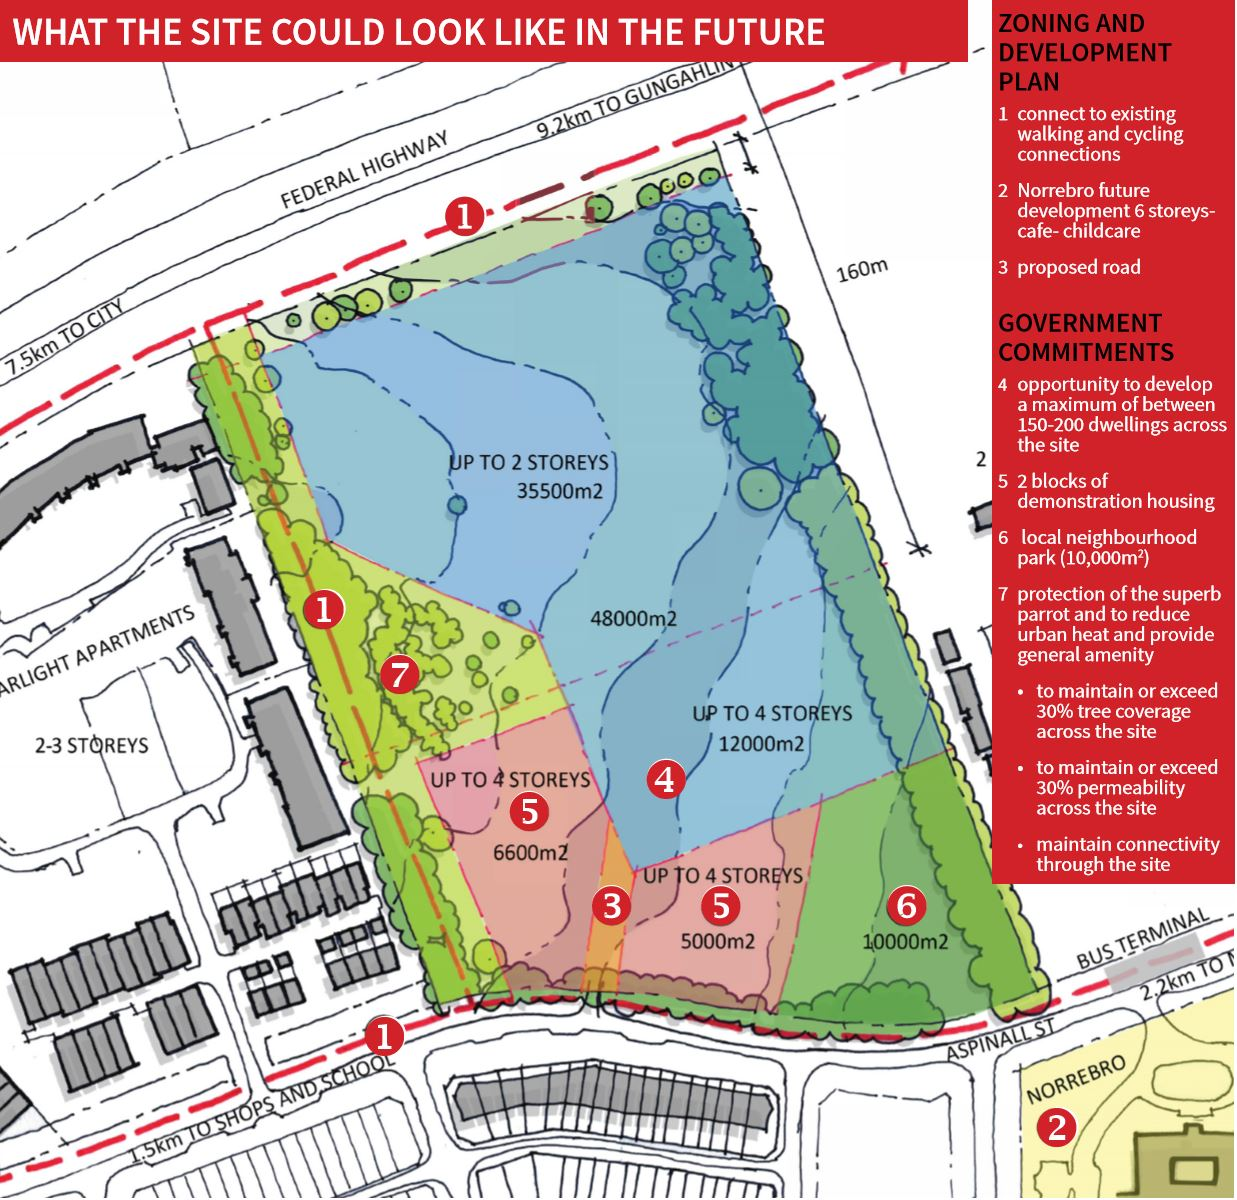 Colour-coded map of Section 76 showing where the open space, housing and park are proposed for the site.